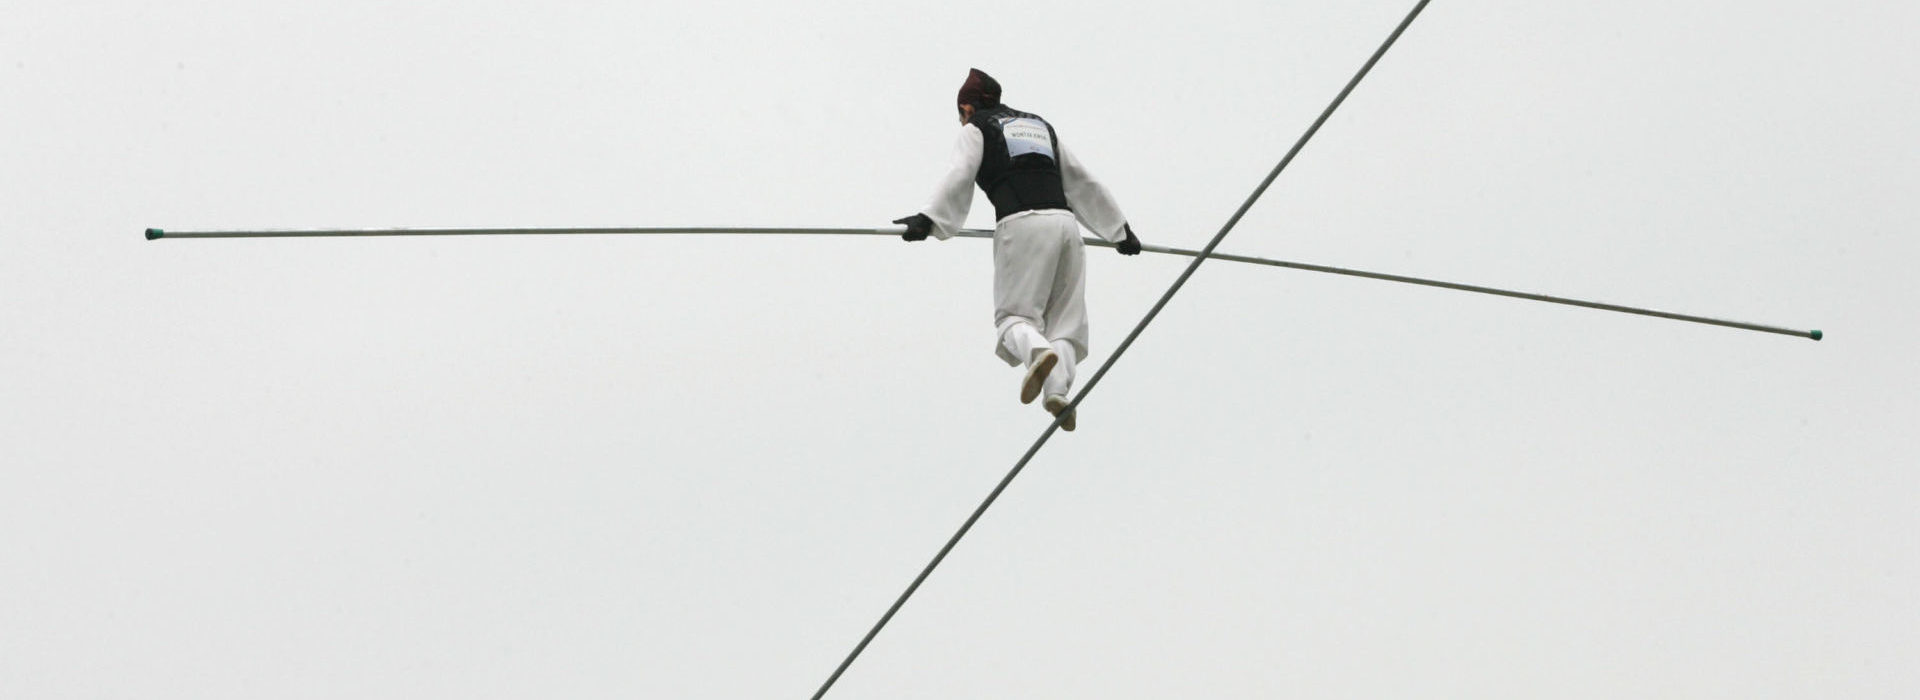 SEOUL, SOUTH KOREA - MAY 3:  Kwon Won-Tae of South Korea participates in the first World High Wire Championships, over the HanGang River, on May 3, 2007 in Seoul, South Korea. As part of the Hi Seoul Festival 2007 programme, 18 world famous high-wire walkers from the Americas, Europe and Asia will compete in the championships in which contestants have to negotiate a 30mm-thick iron wire stretching 1,000m across the HanGang River in the fastest possible time.  (Photo by Chung Sung-Jun/Getty Images)